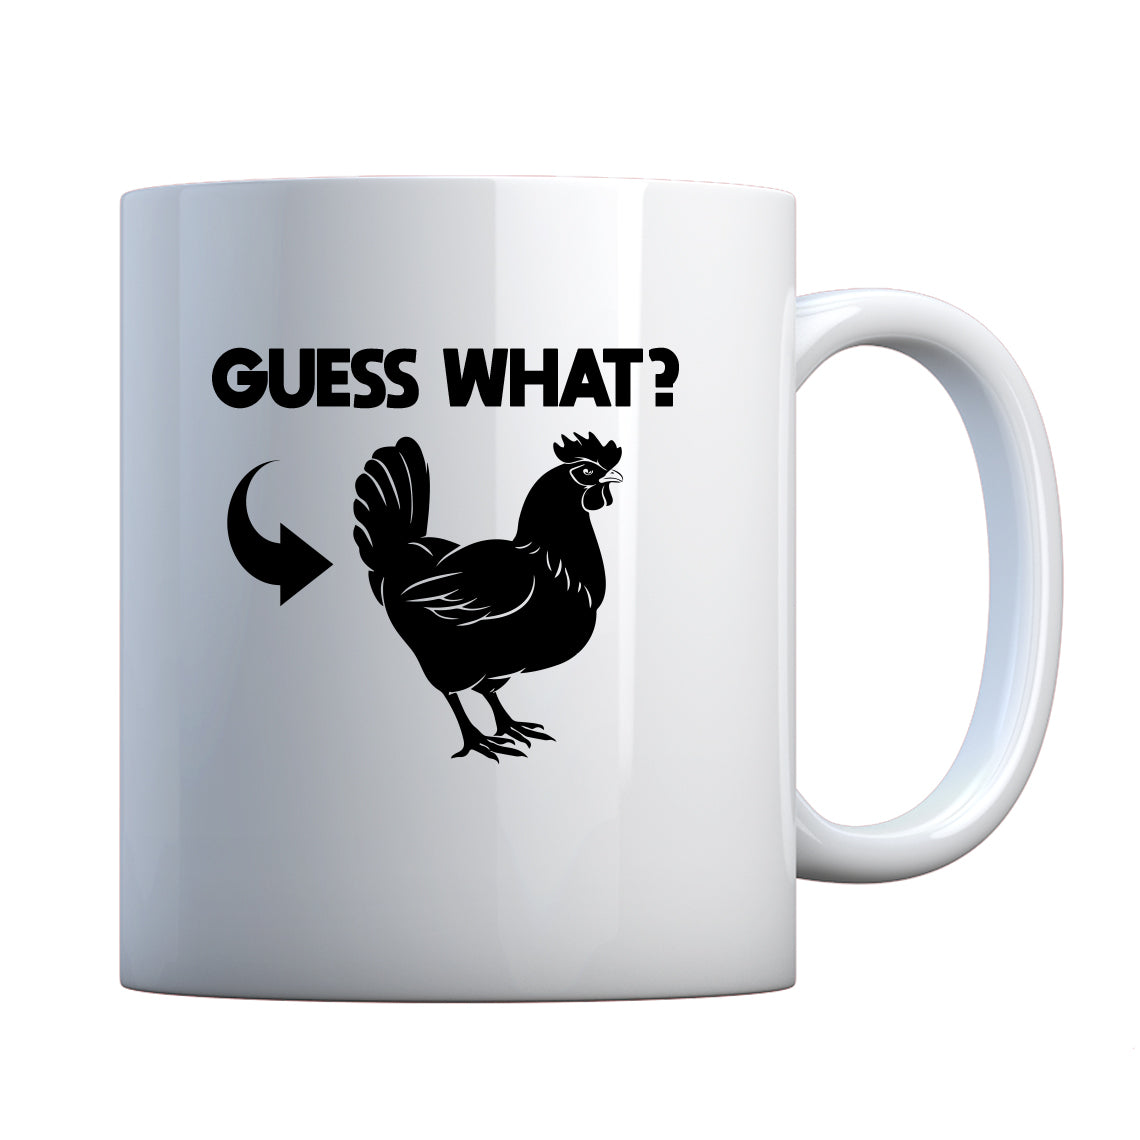 Mug Chicken Butt Ceramic Gift Mug